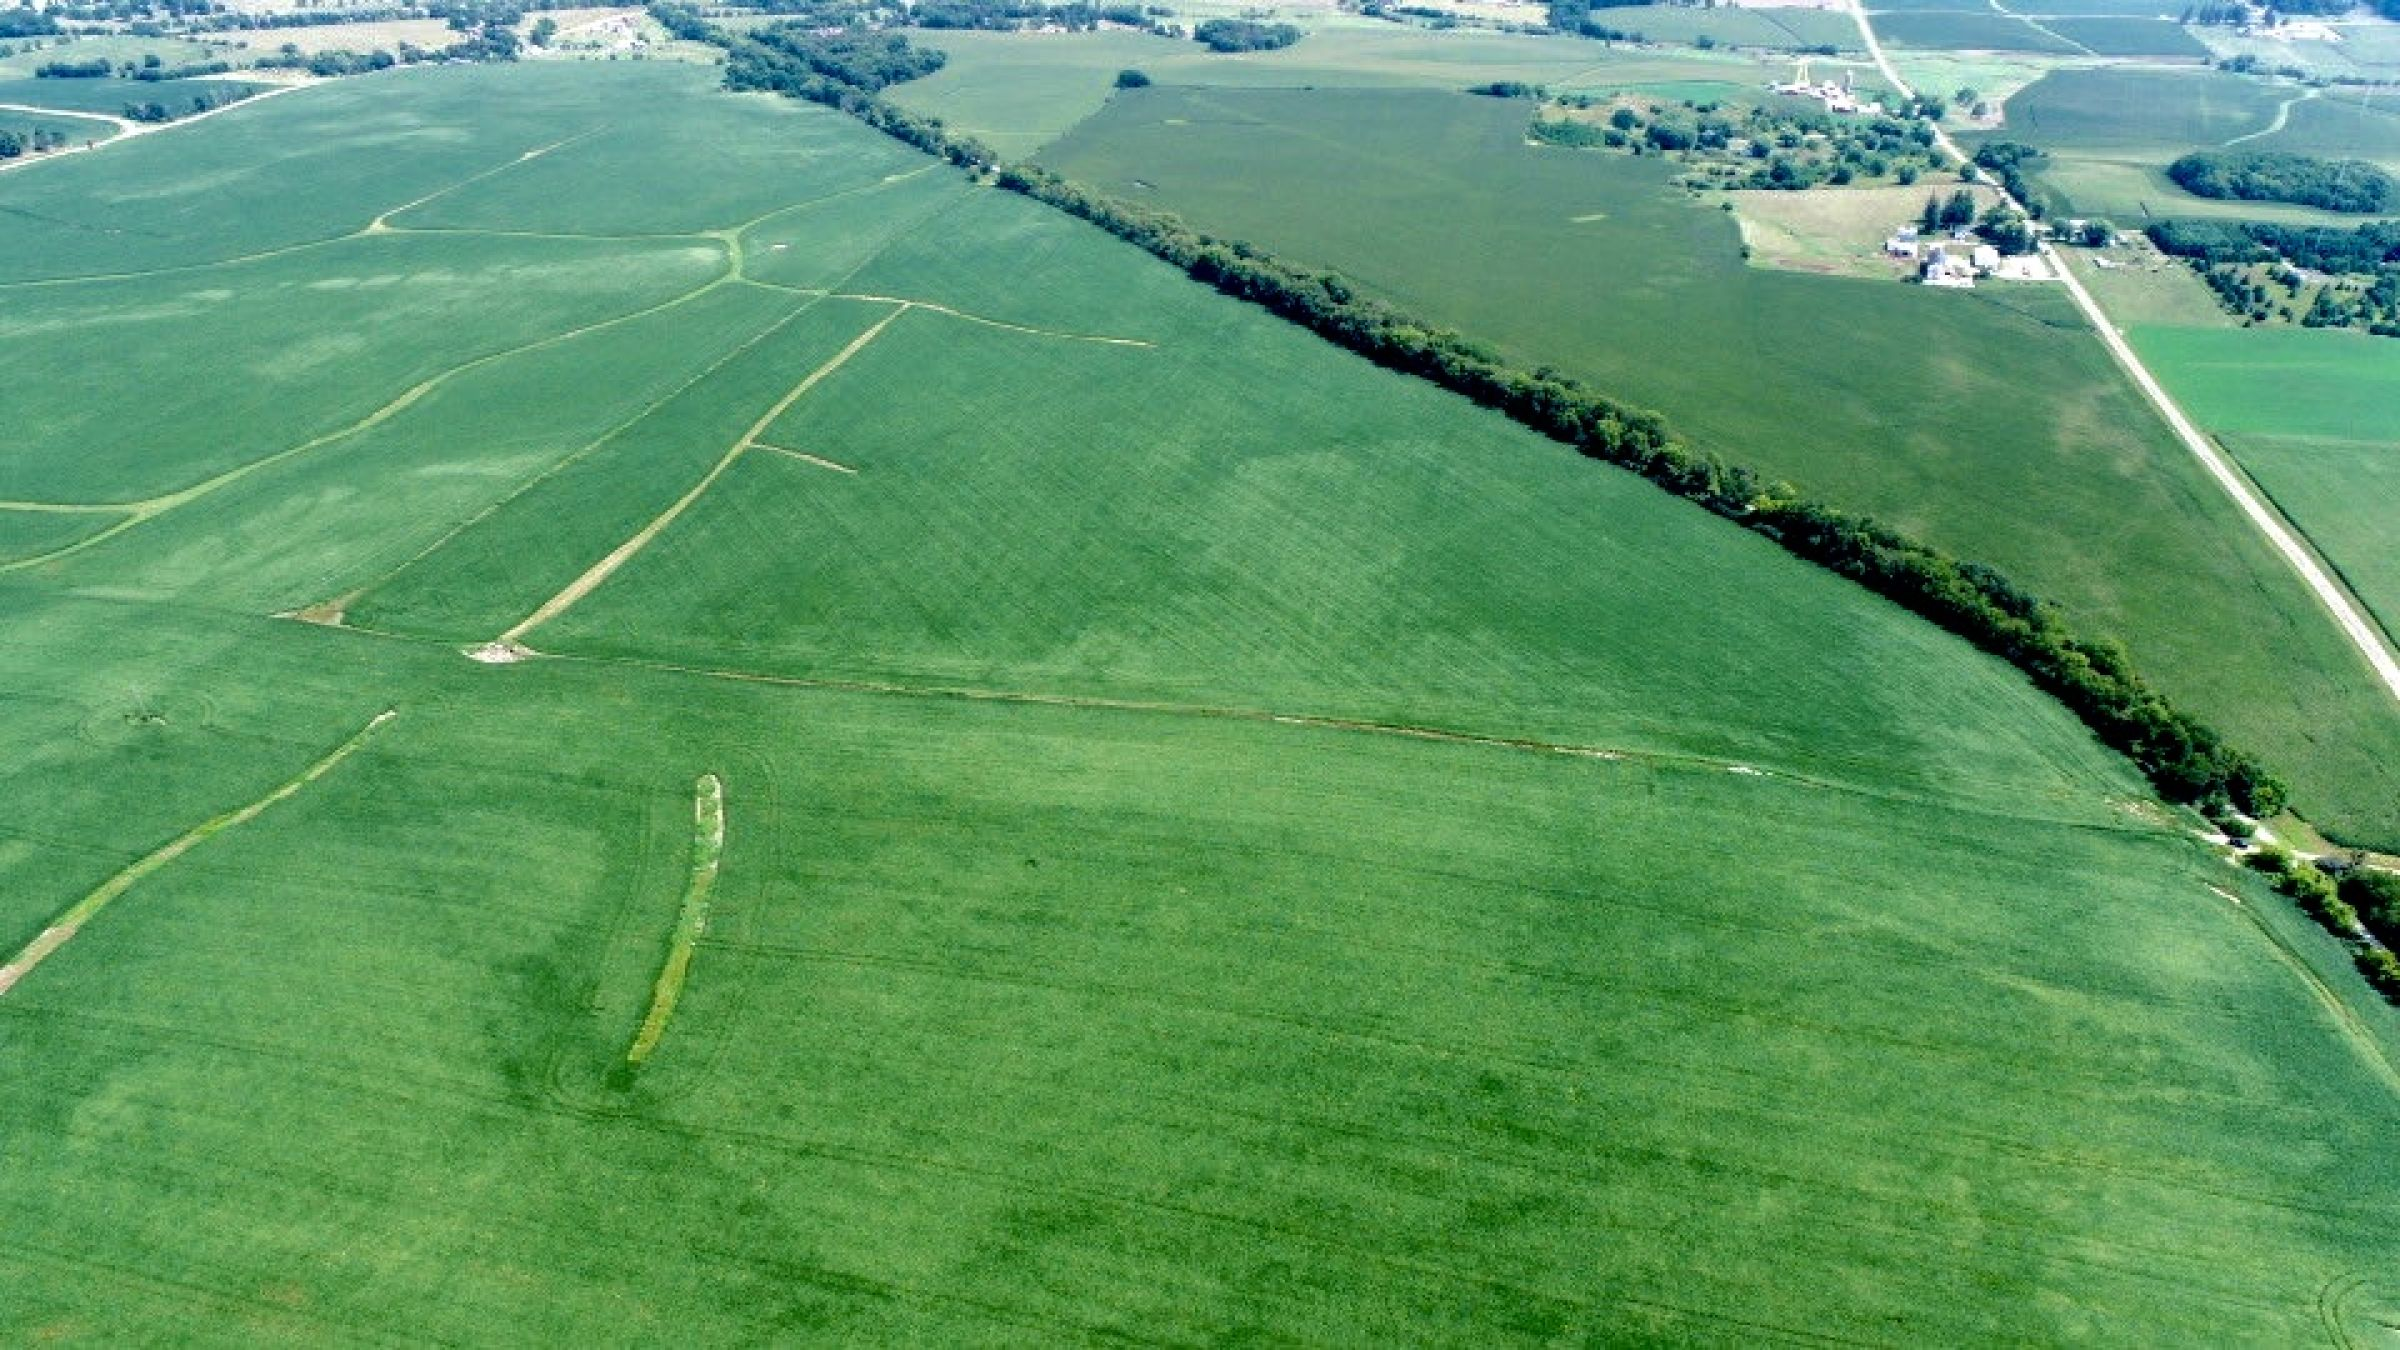 land-green-county-wisconsin-80-acres-listing-number-15692-10-2021-08-19-205614.jpg